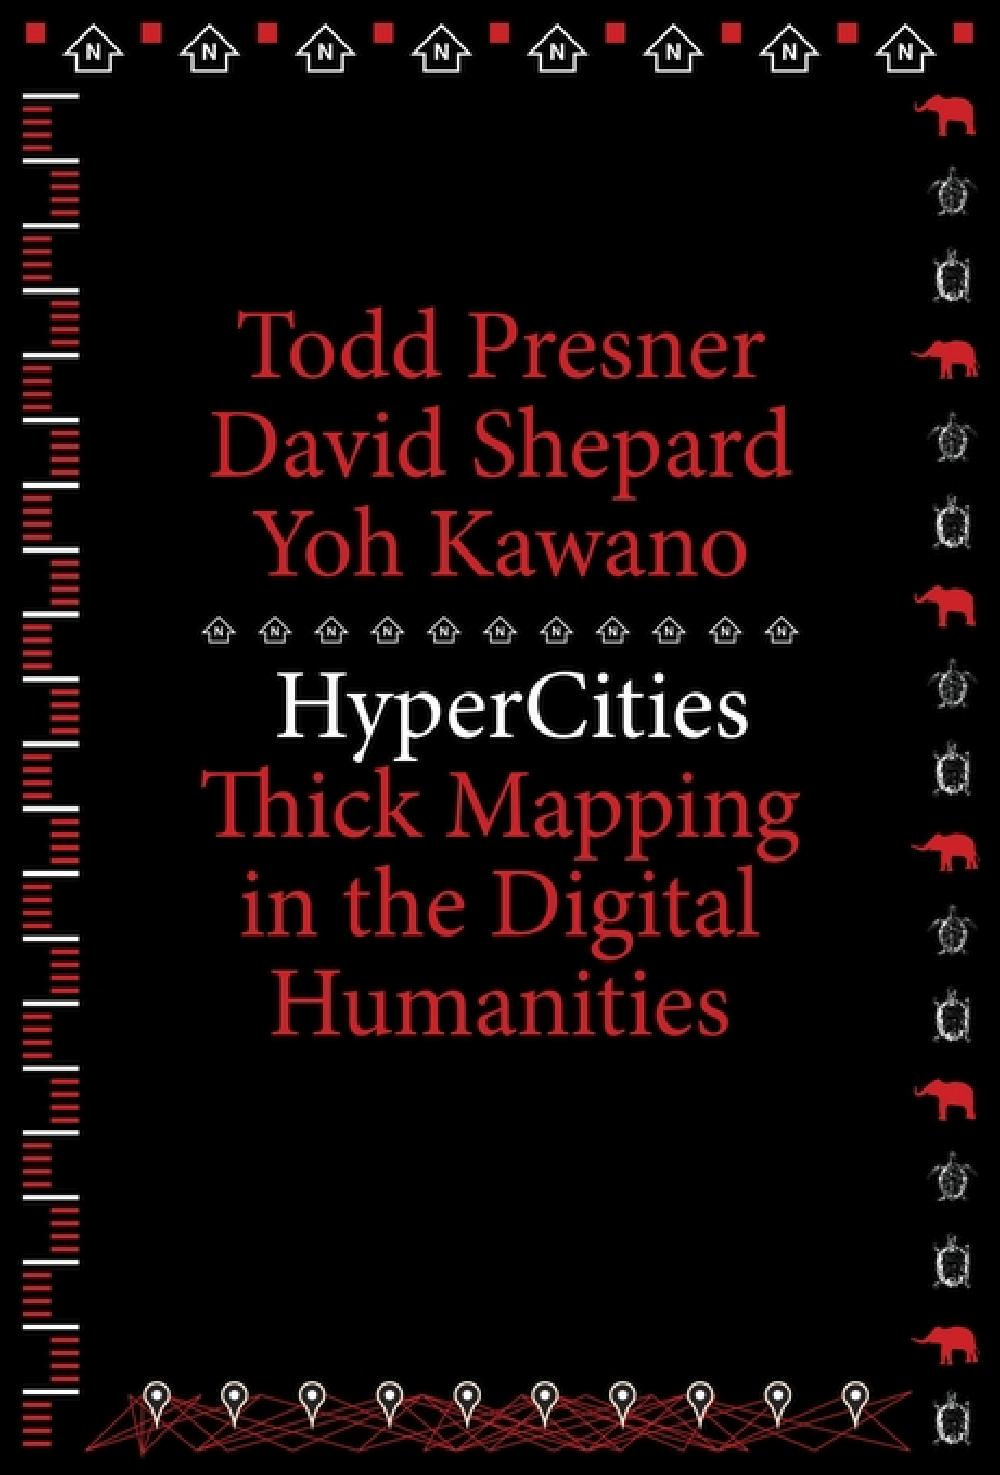 HyperCities Thick Mapping in the Digital Humanities